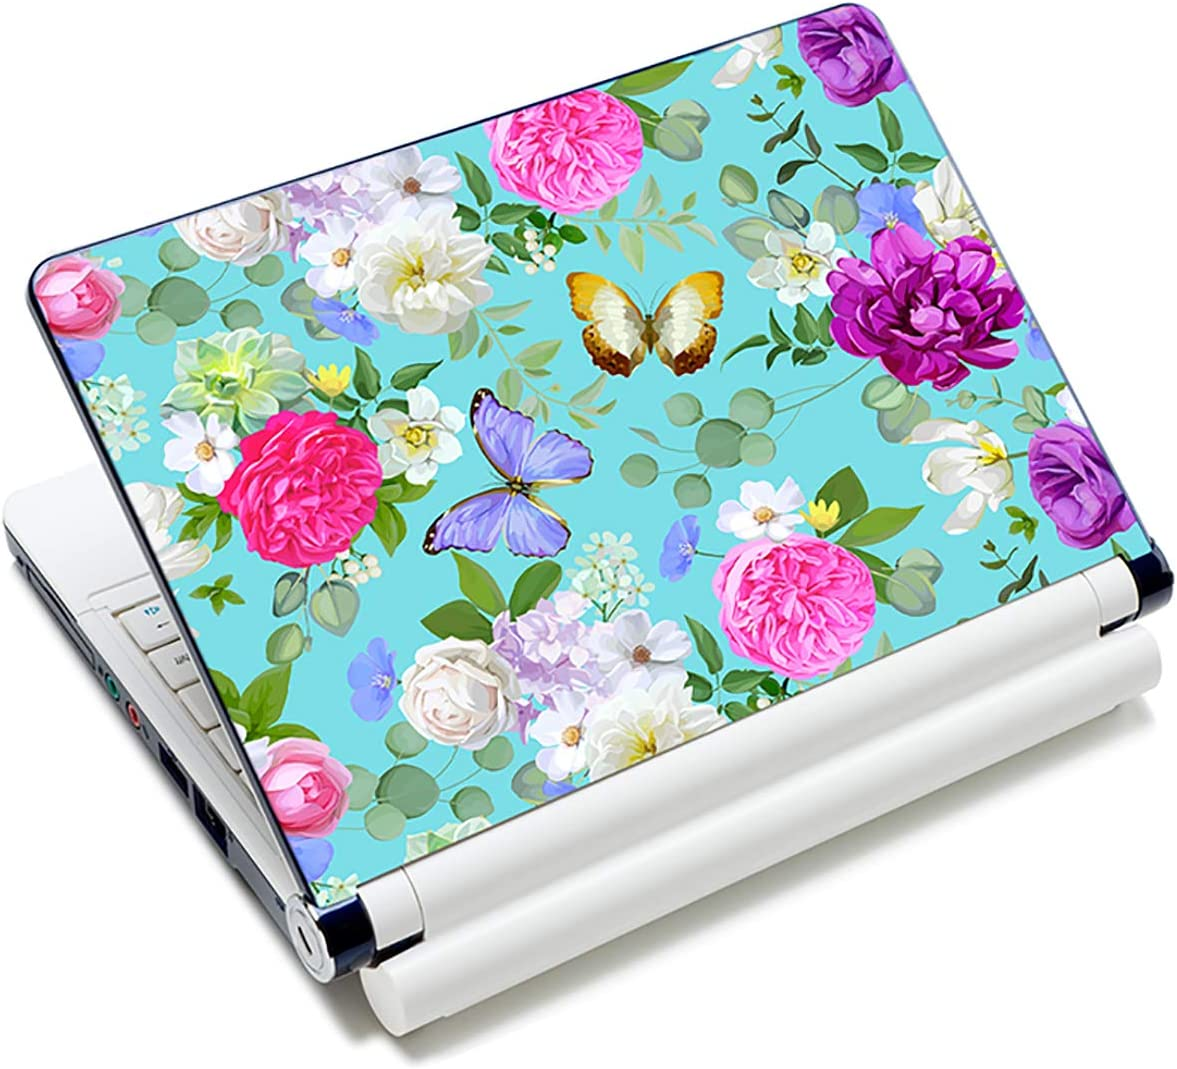 Laptop Stickers Decal,12 13 14 15 15.6 inches Netbook Laptop Skin Sticker Reusable Protector Cover Case for Toshiba Hp Samsung Dell Apple Acer Leonovo Sony Asus Laptop Notebook (Colorful Flowers)